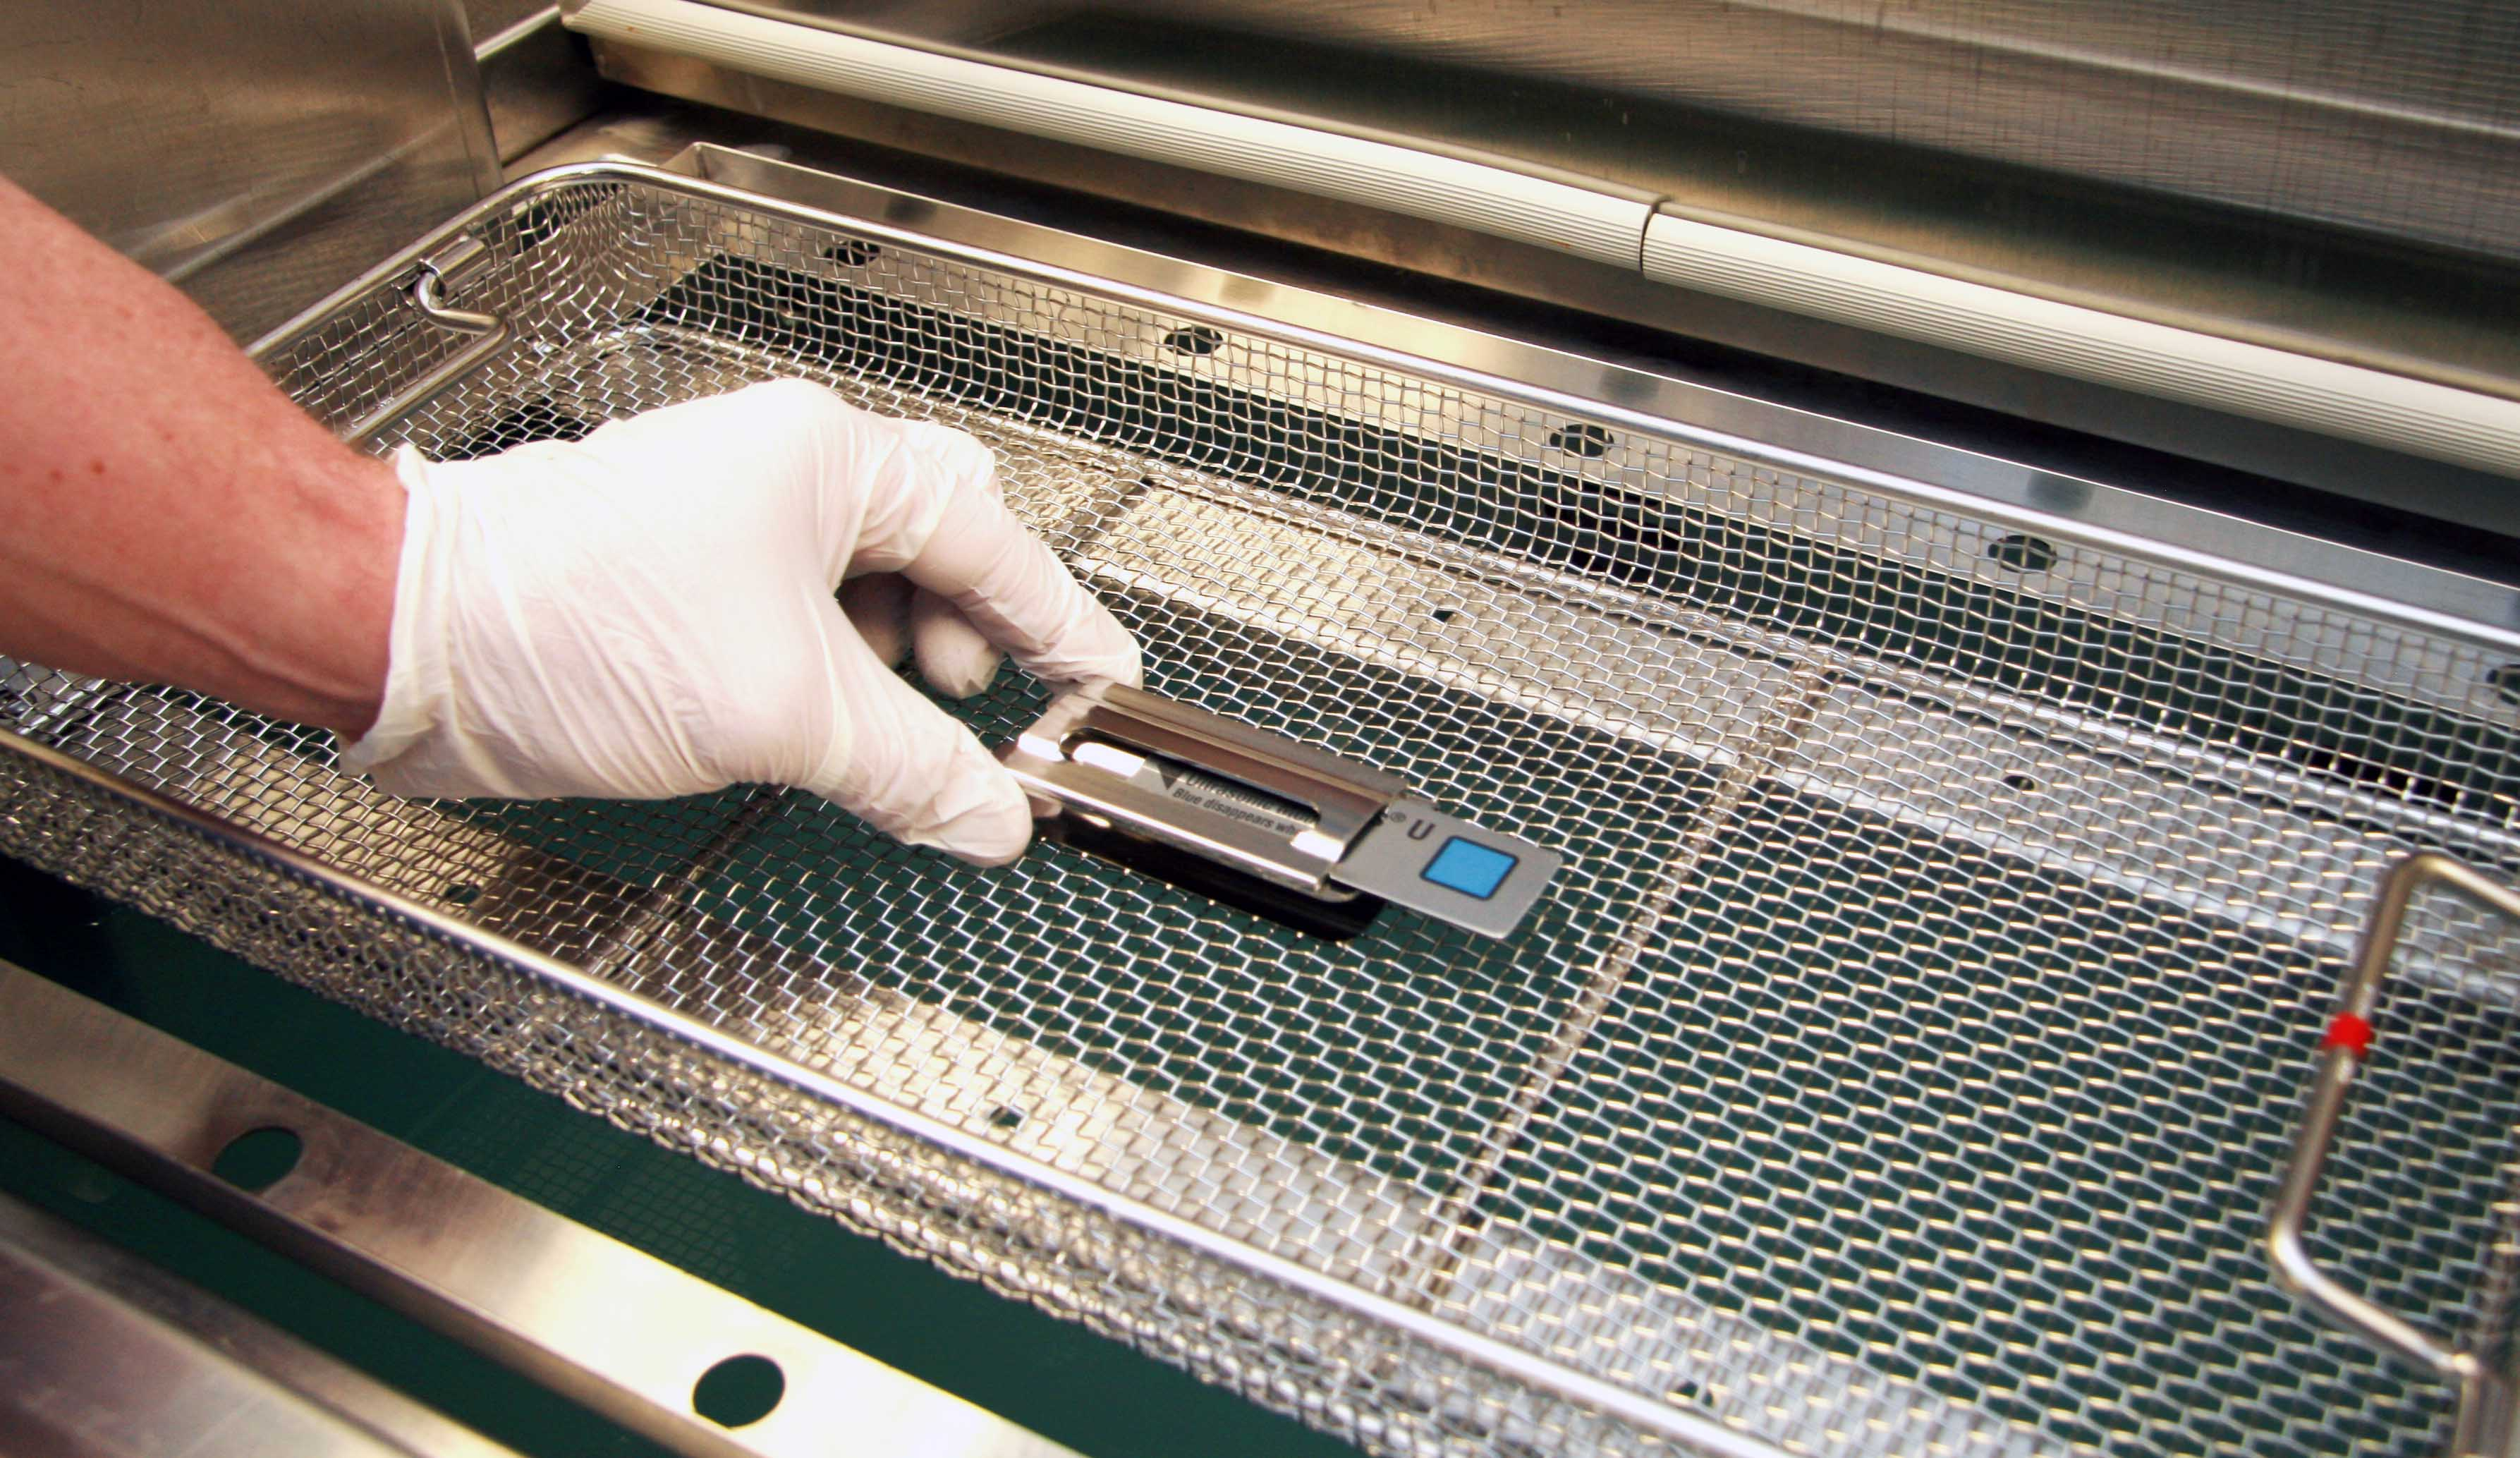 Ultrasonic Cleaning Monitor In-Use